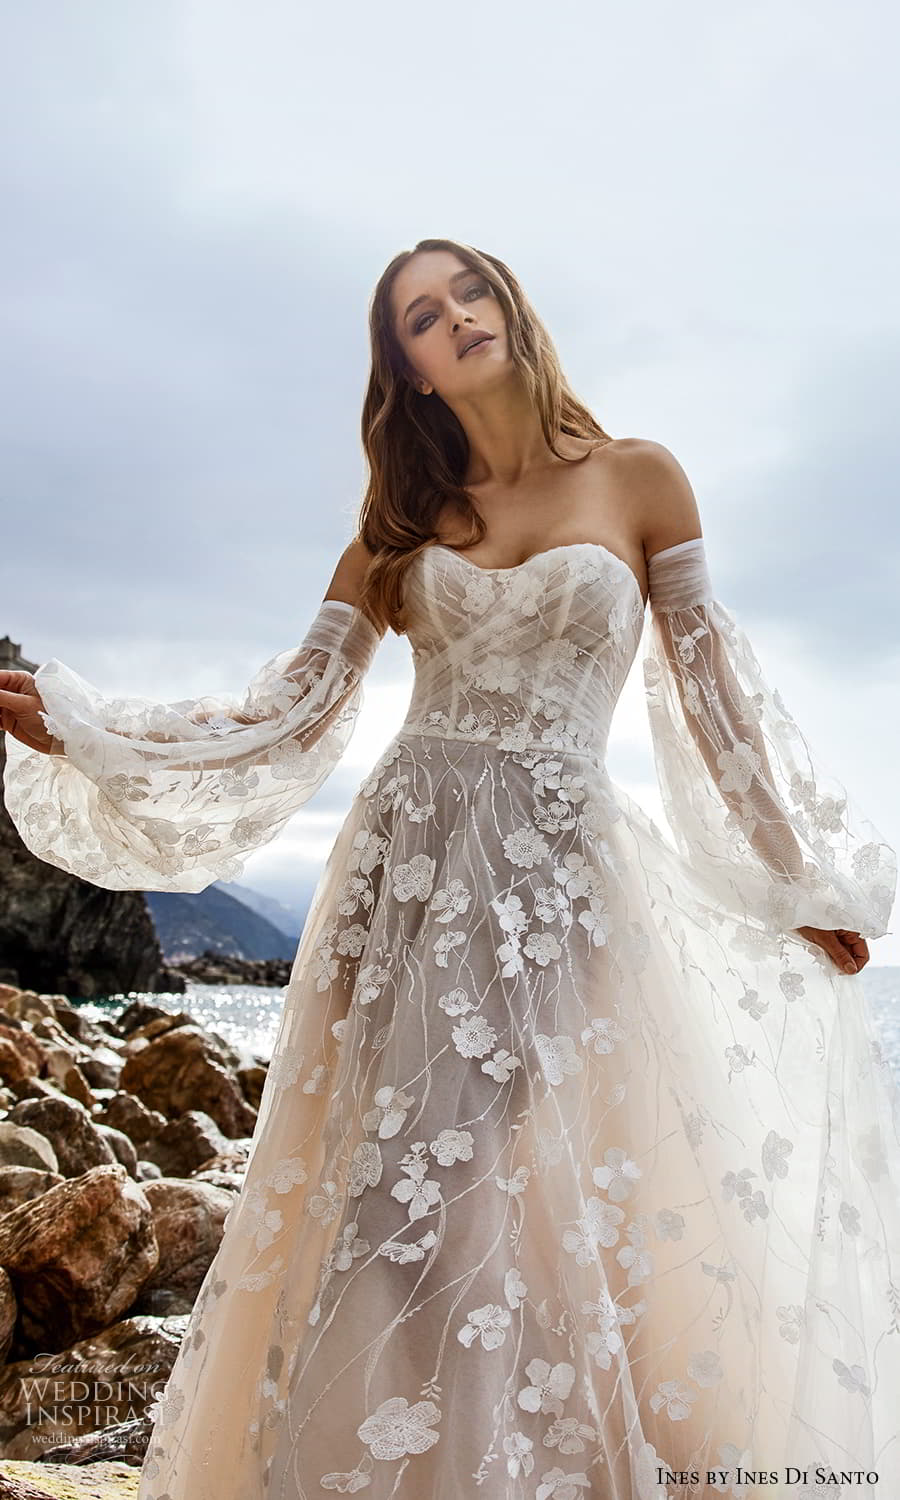 ines ines di santo spring 2022 bridal detached bishop sleeves strapless sweetheart neckline fully embellished a line ball gown wedding dress chapel train (1) zv